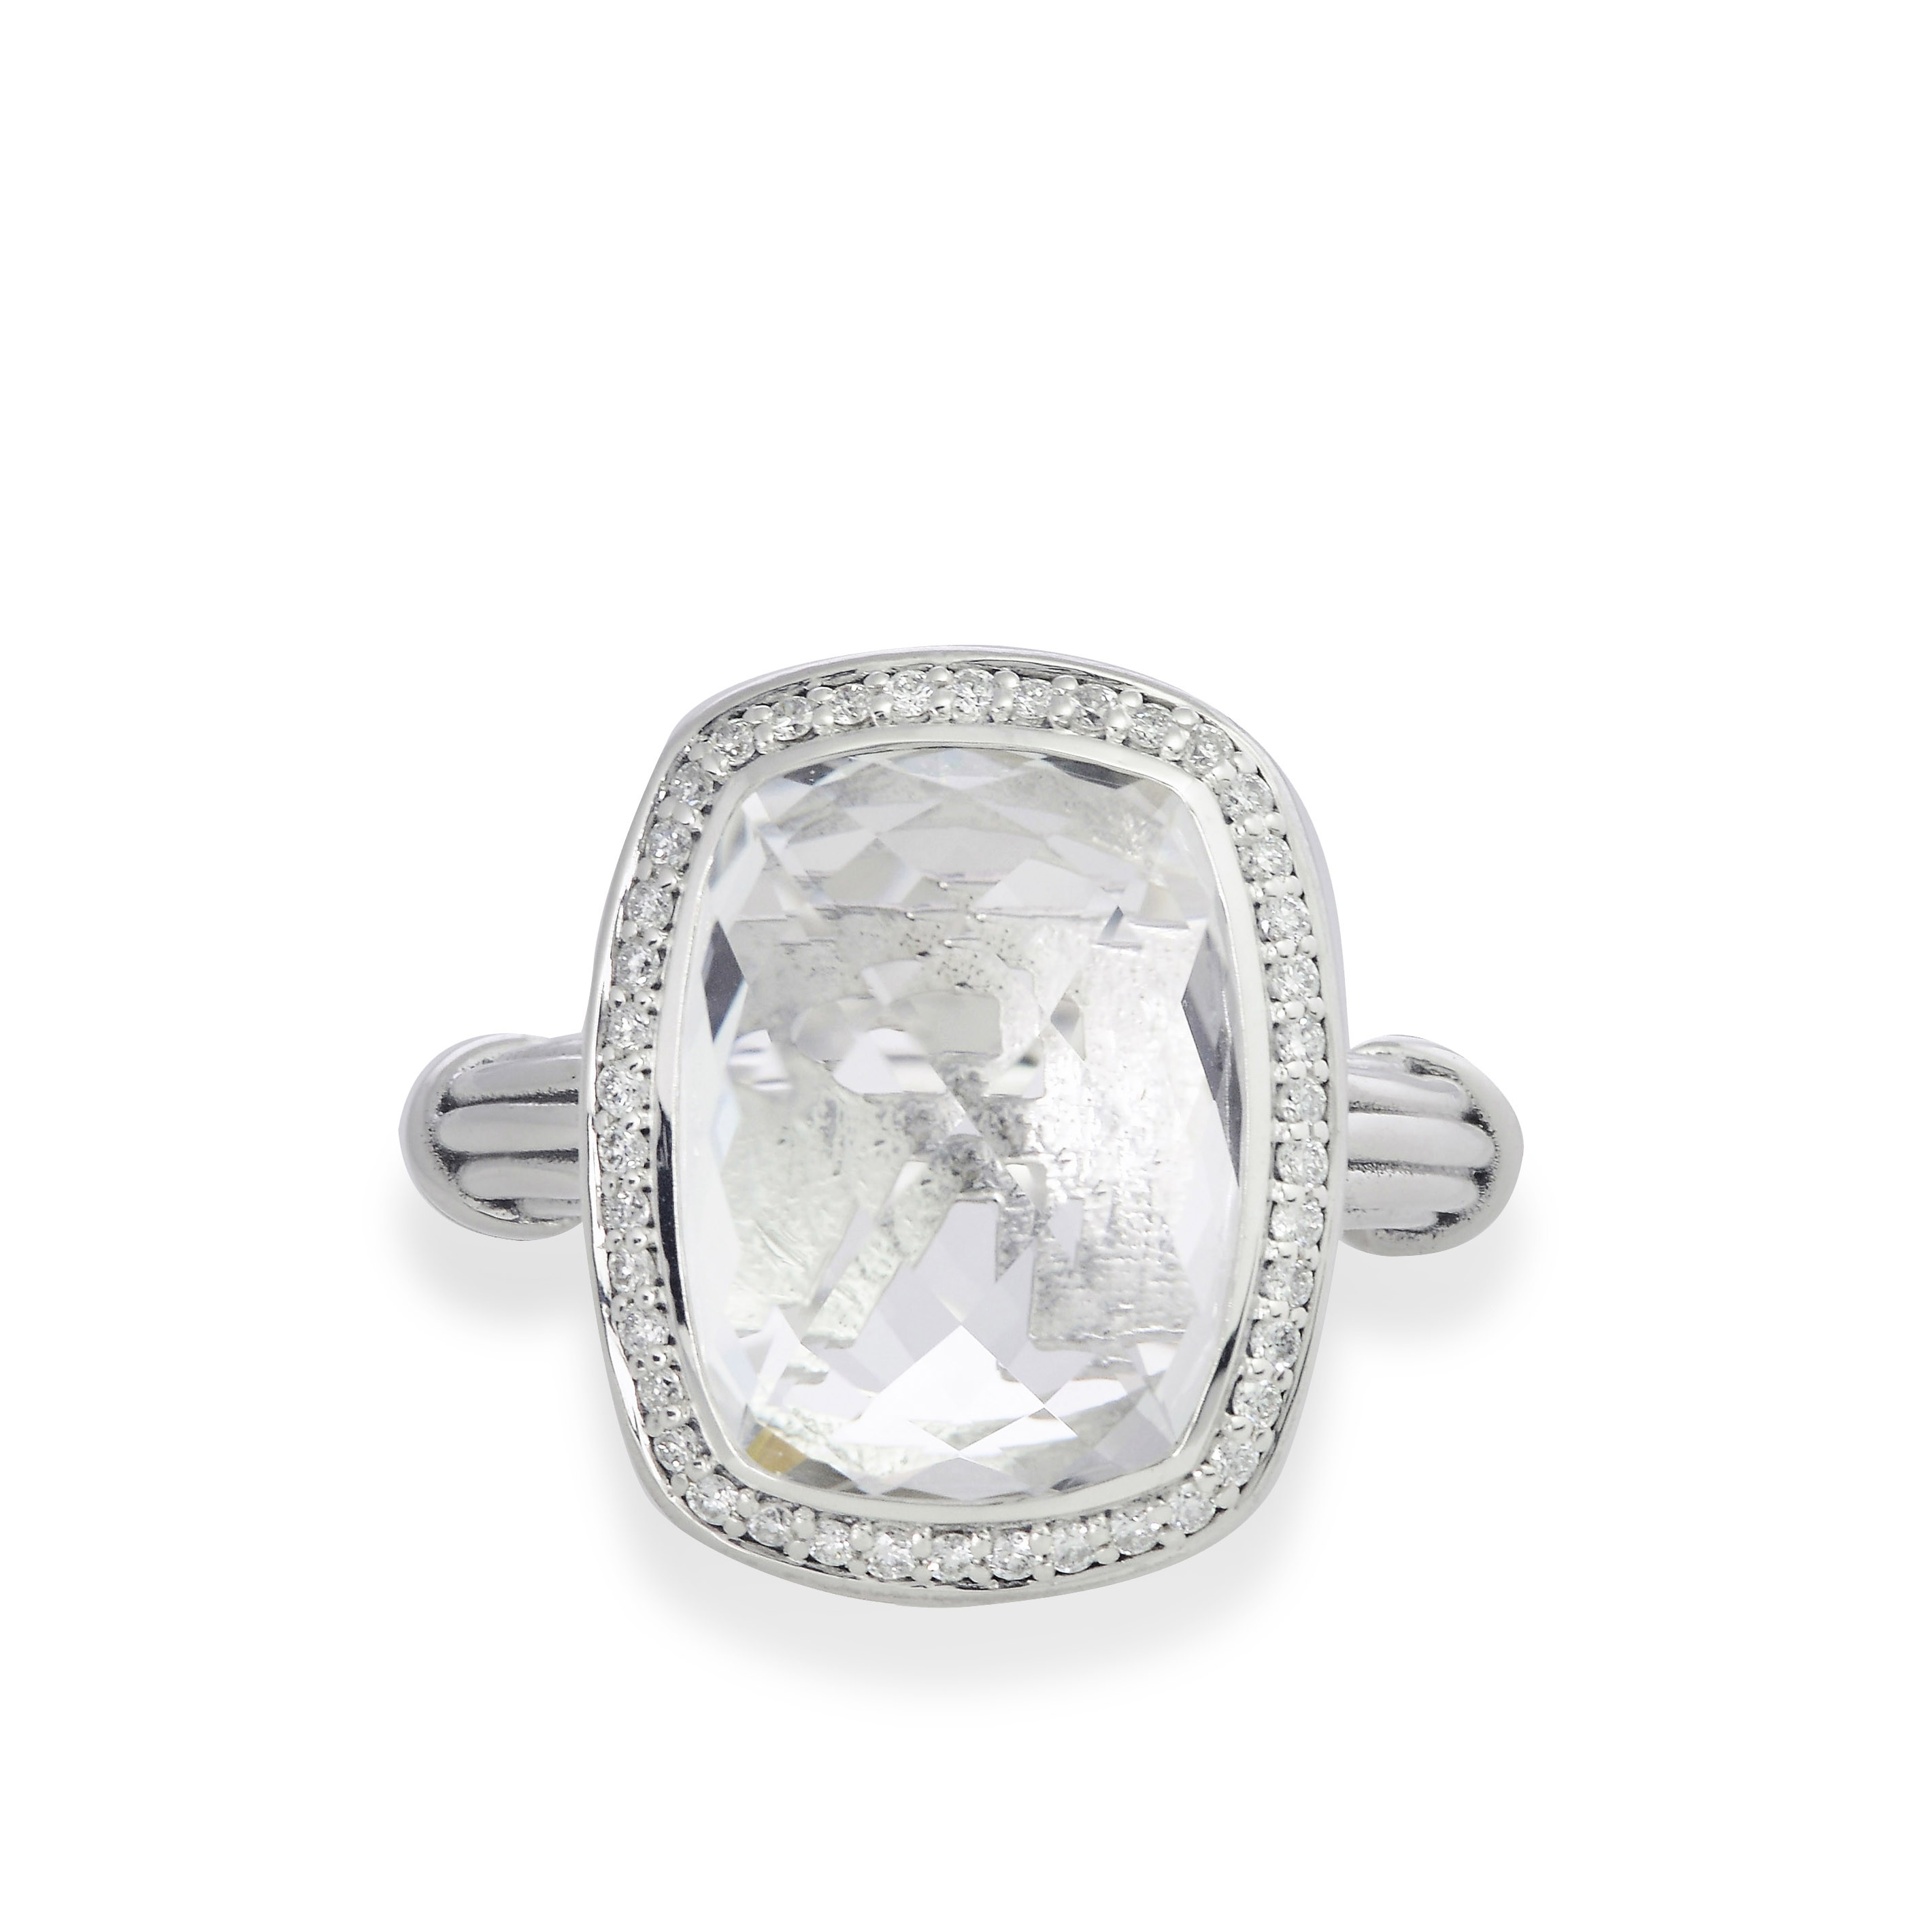 crystal sterling rose ring single silver solitaire fullsizerender rings of quartz kind in raw stone a products